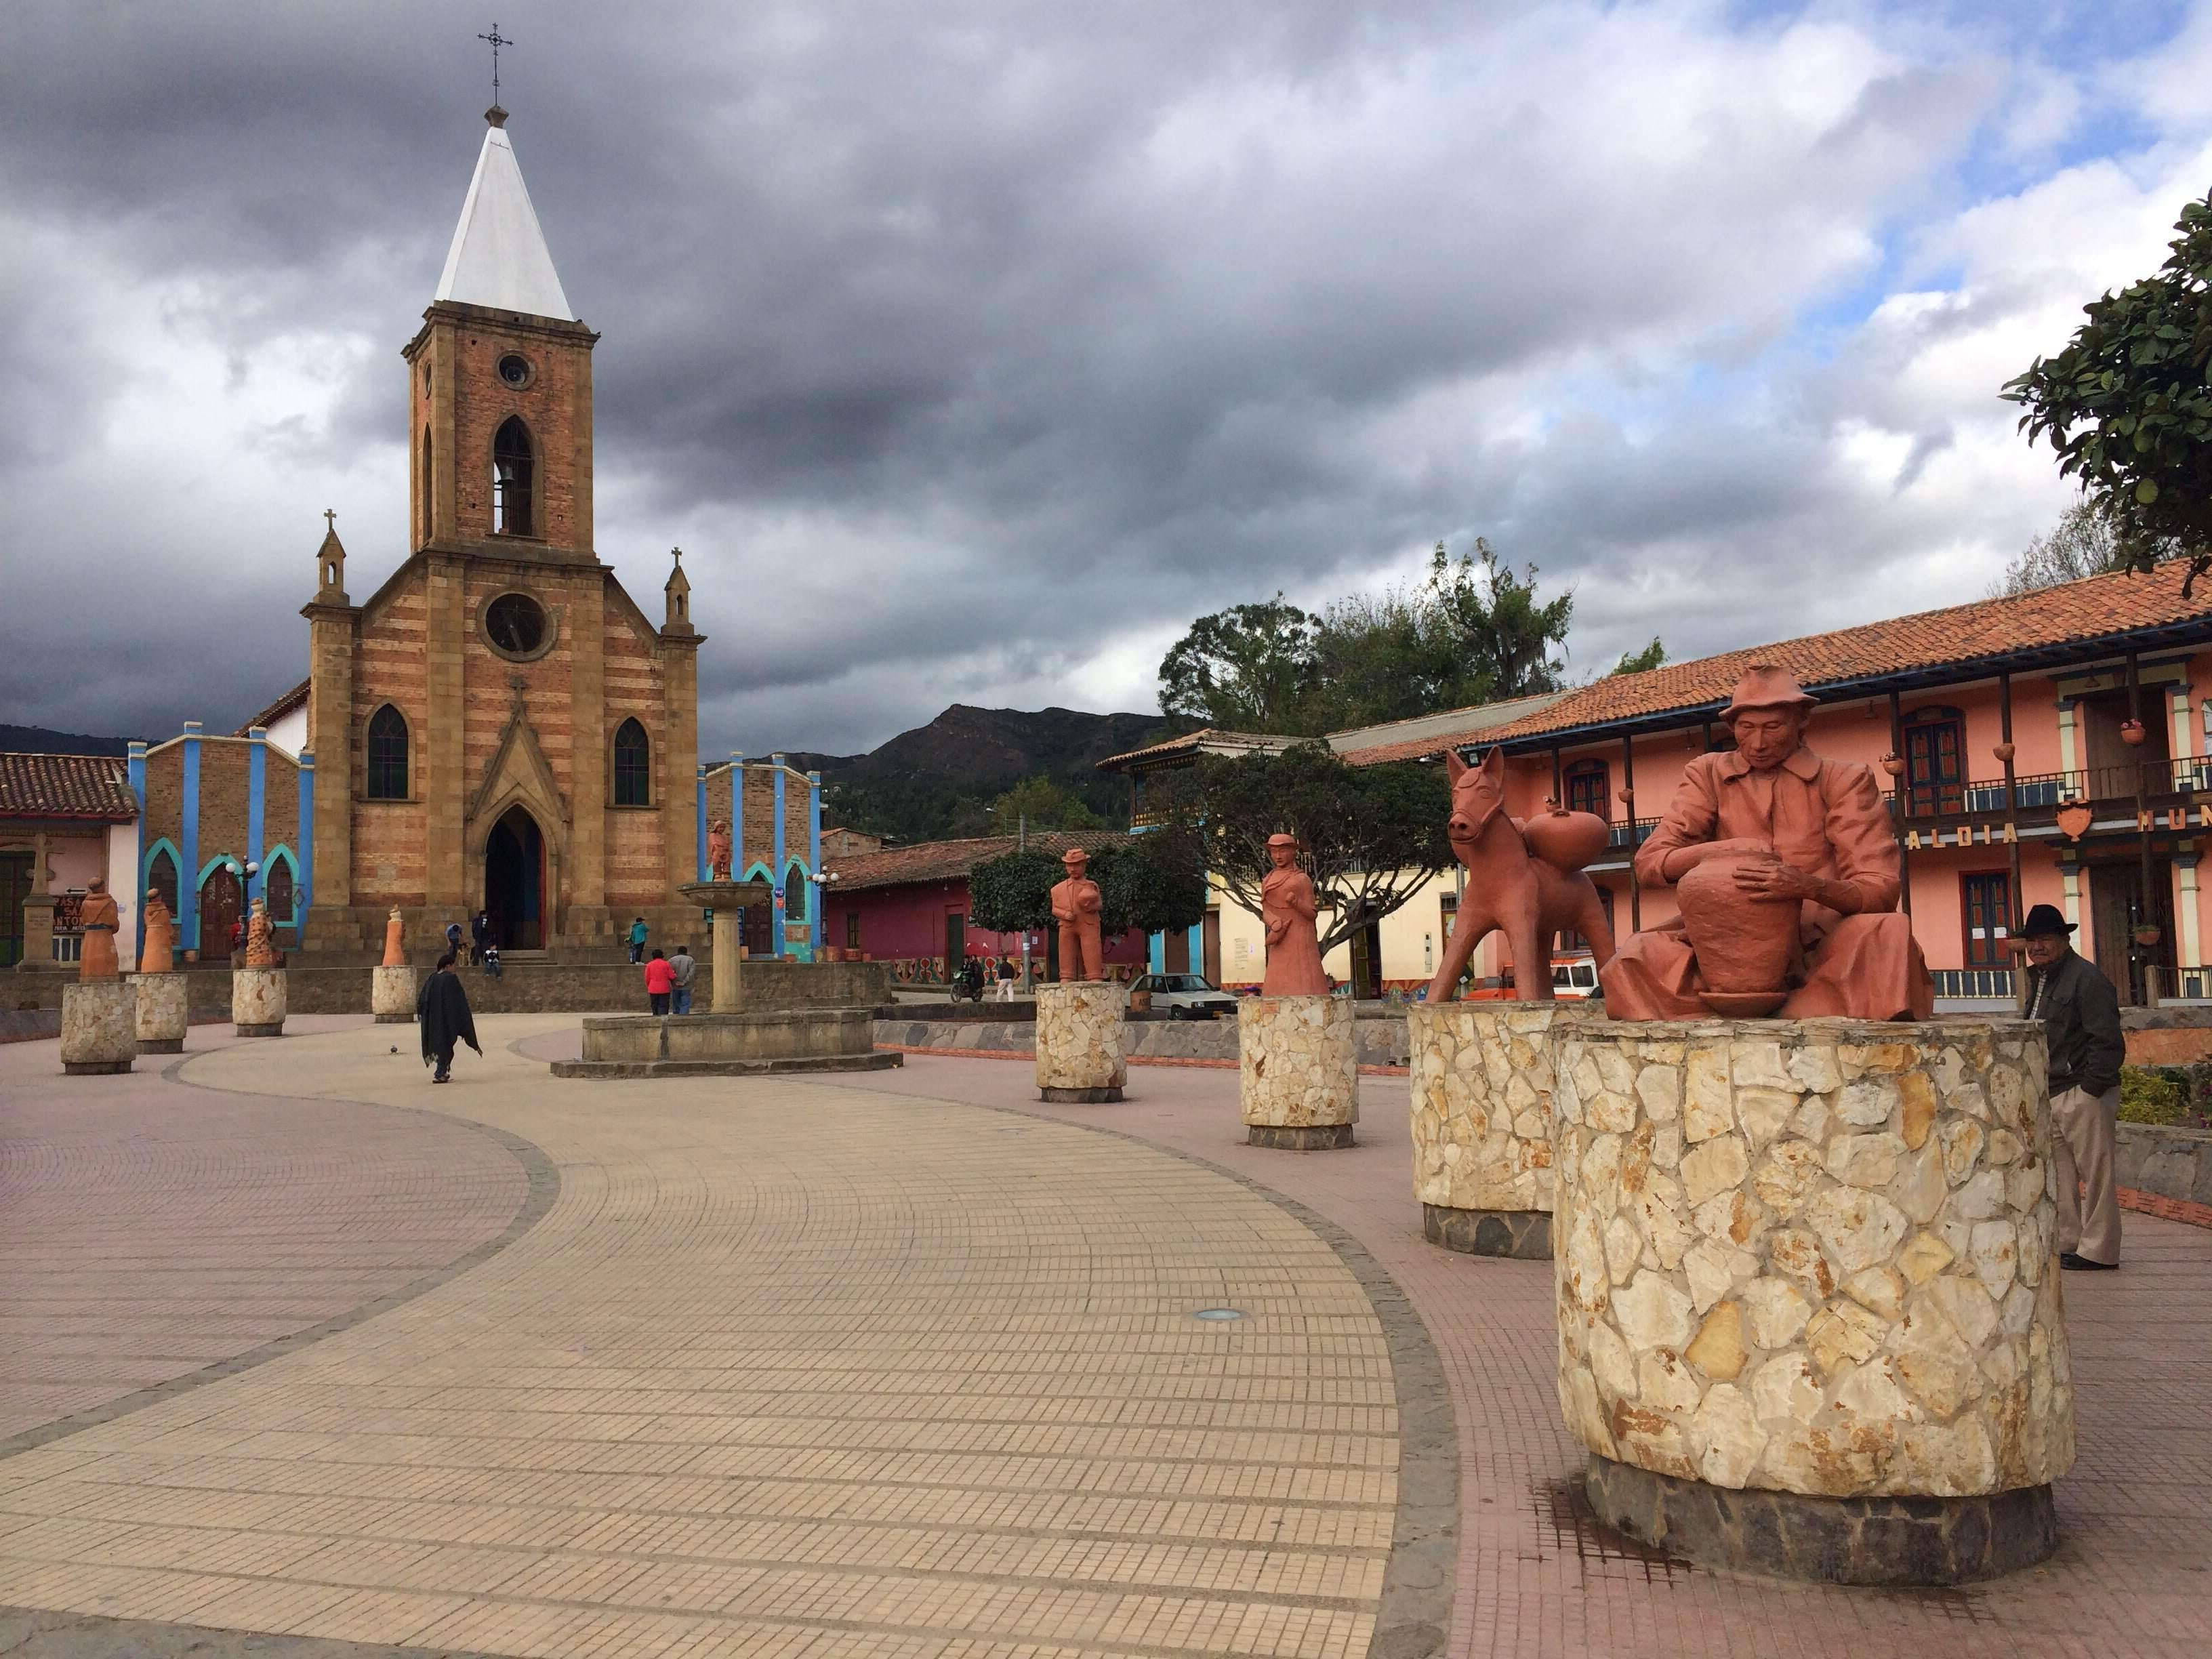 Monasterio en Plaza Mayor de Ráquira